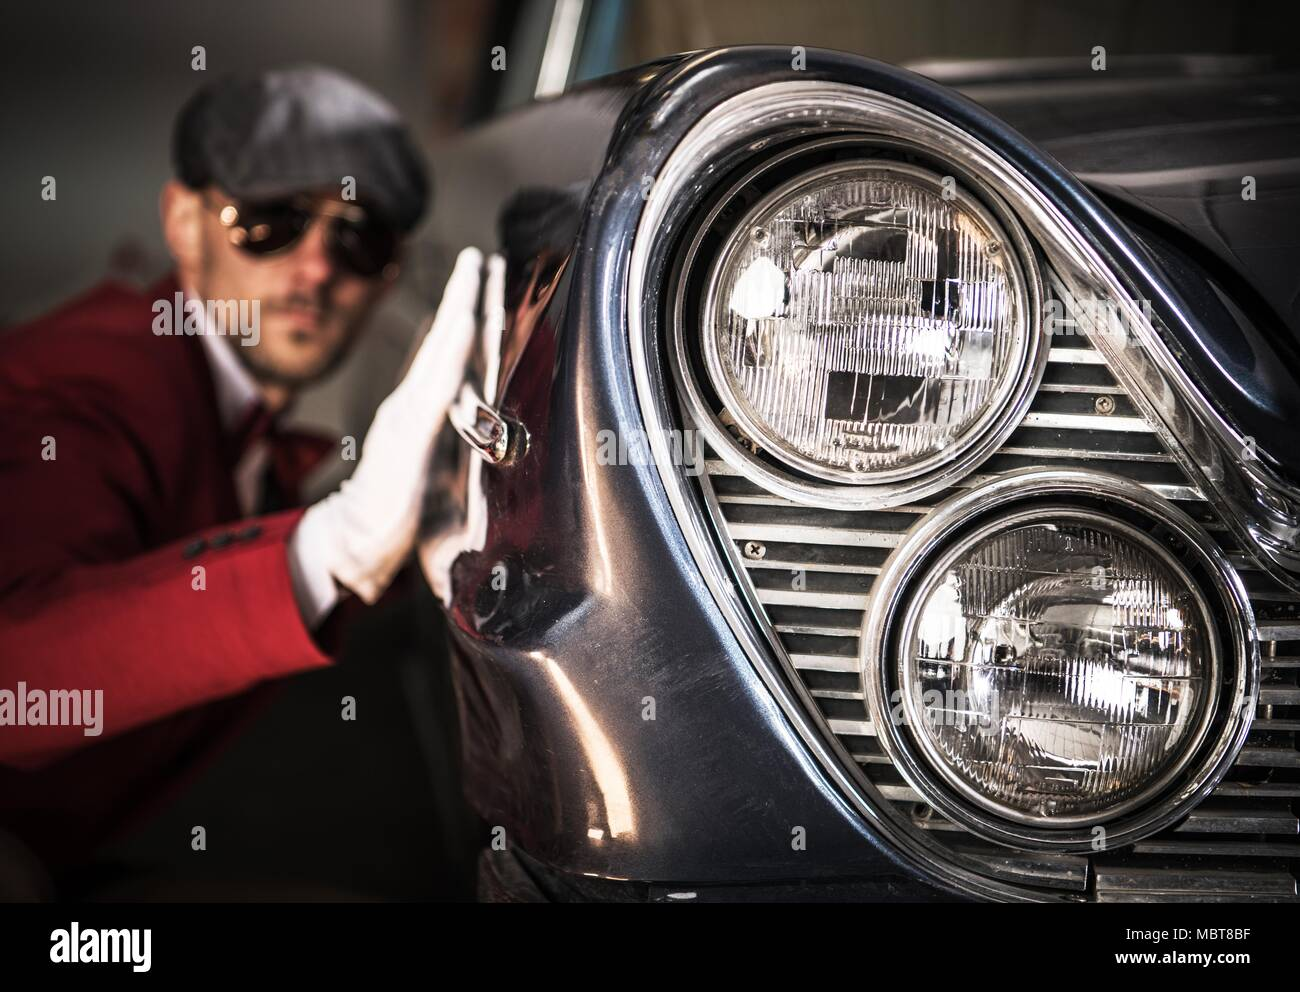 Vintage Cars Collection Stock Photos & Vintage Cars Collection Stock ...